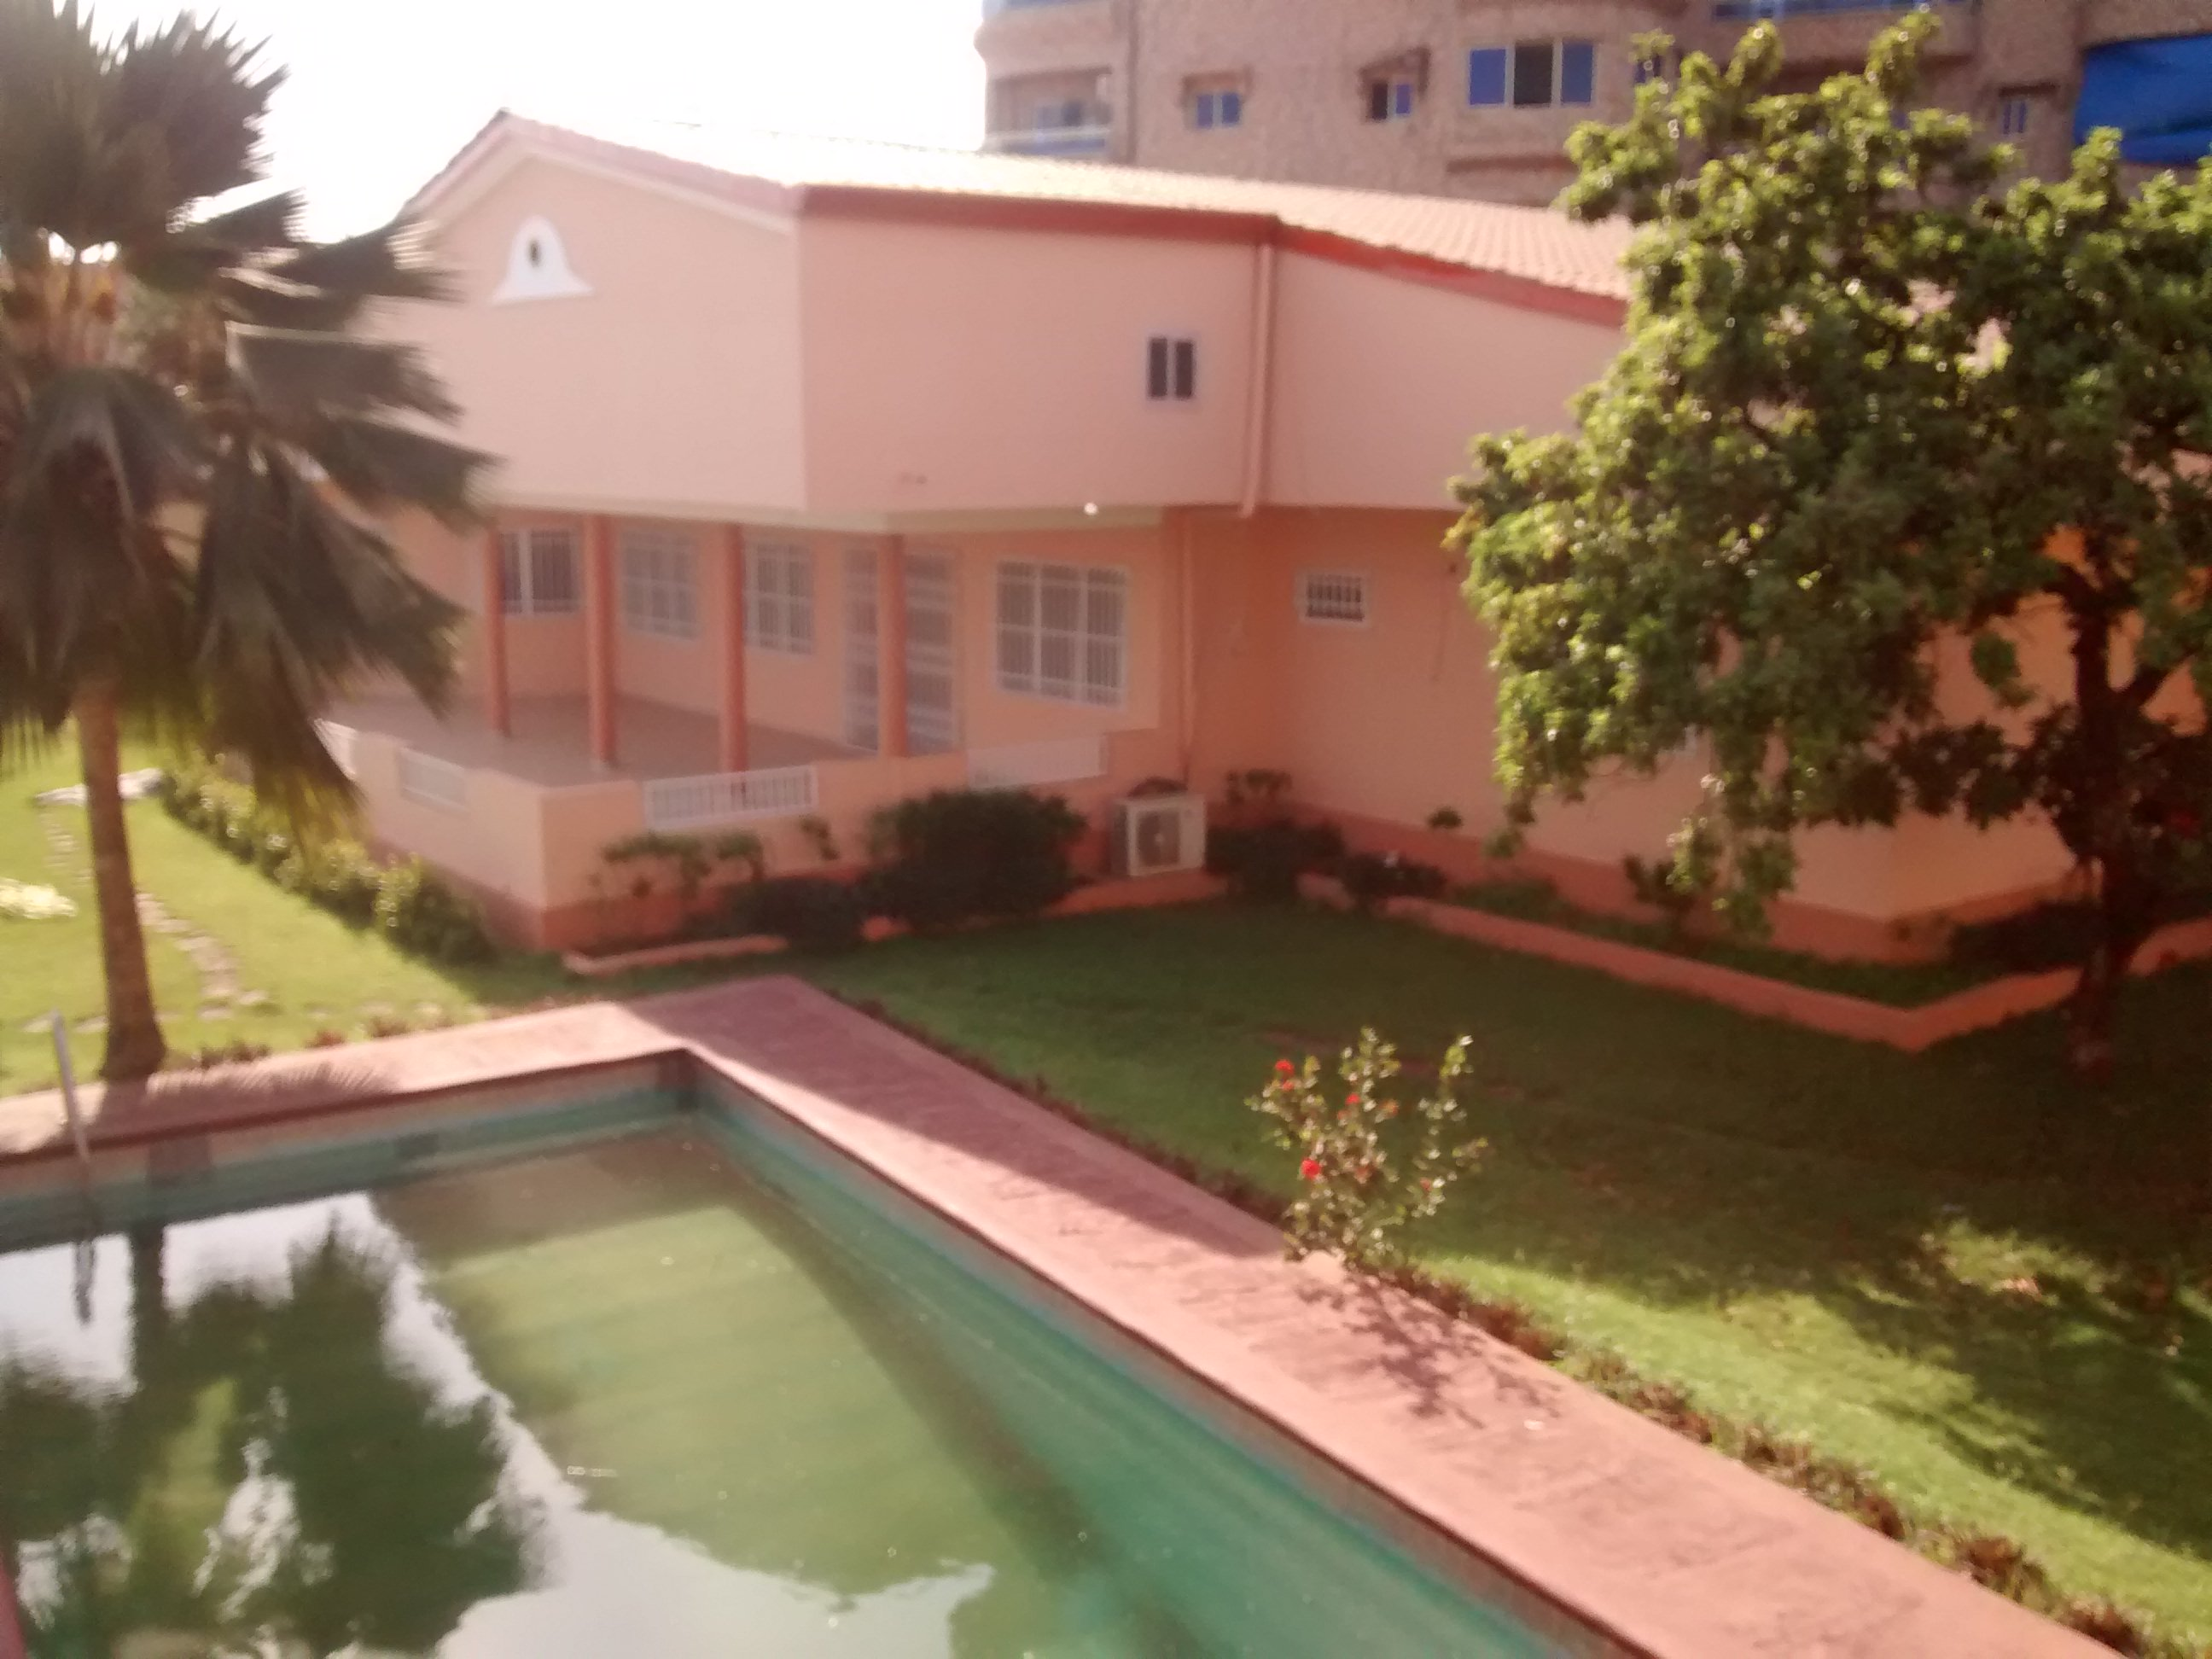 Stayed in newly built 3-bed house before first tenant, Conakry, Guinea.